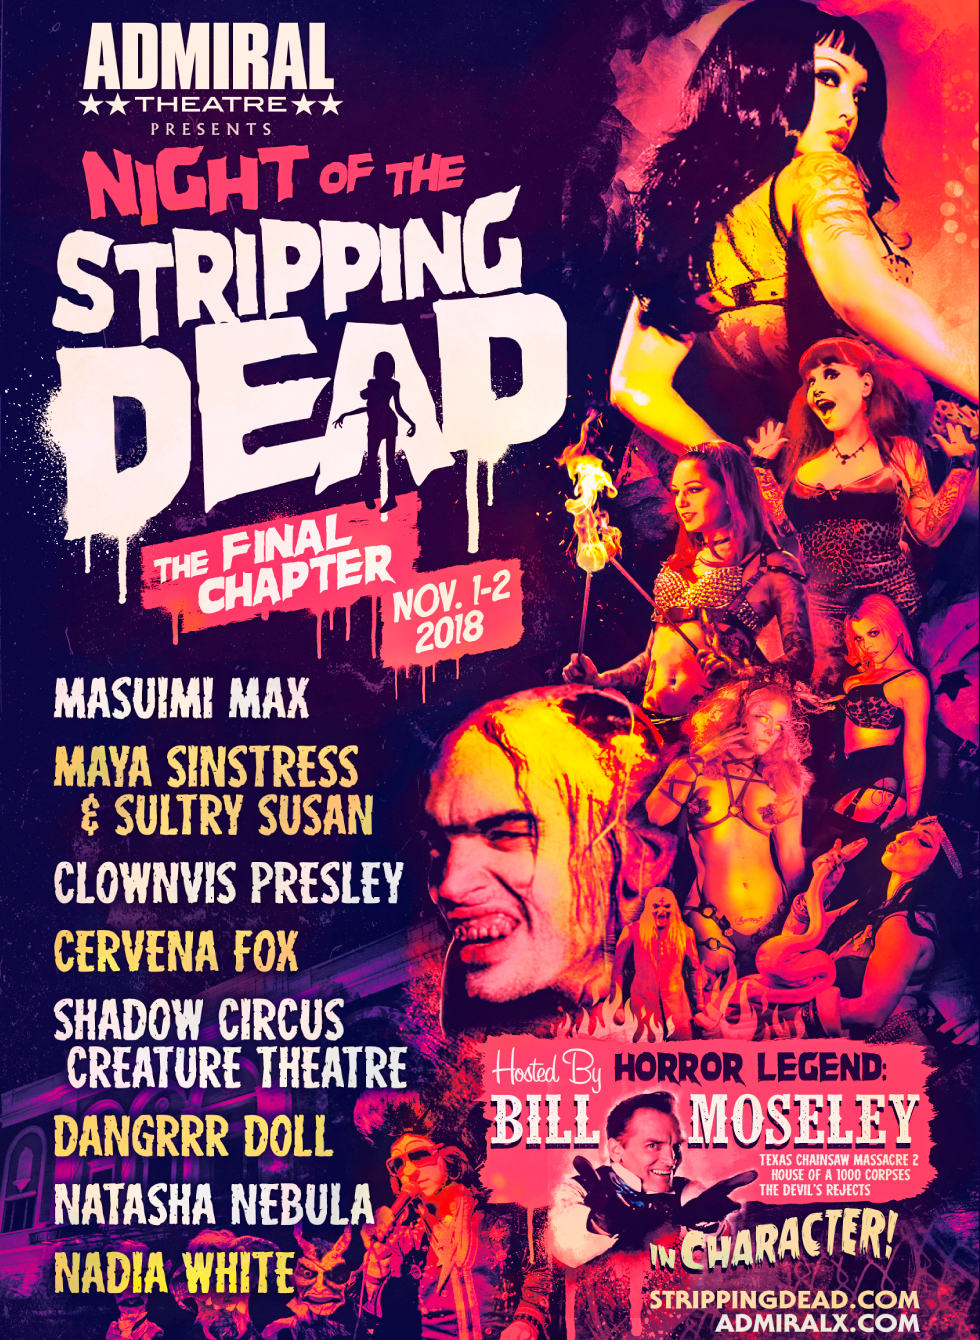 Night of the stripping dead